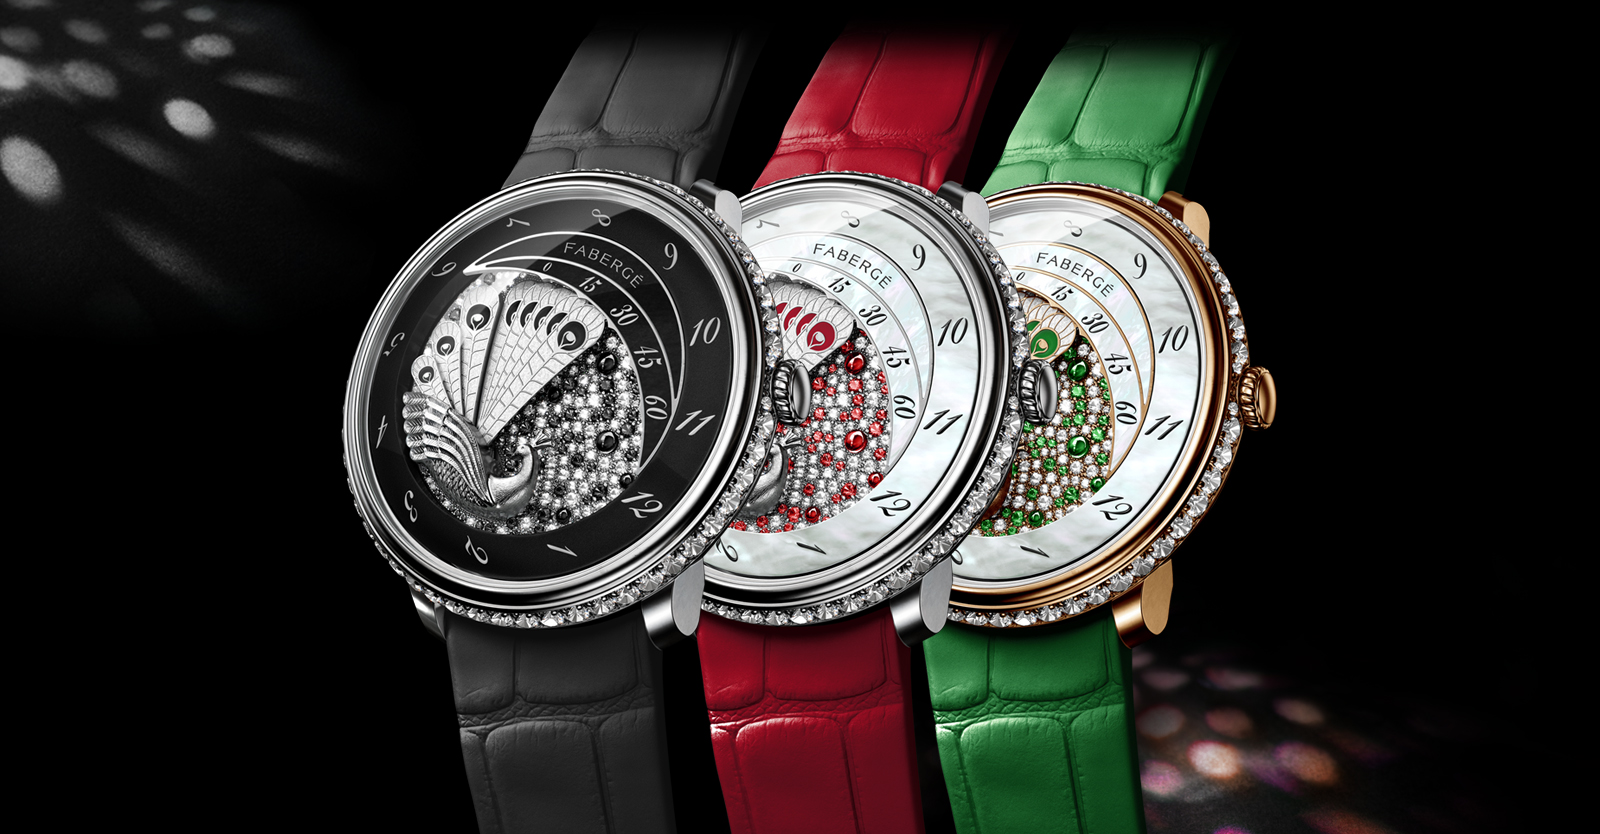 Three watches from the Fabergé Lady Compliquee Collection. One with black strap, one with red strap, one with green strap.